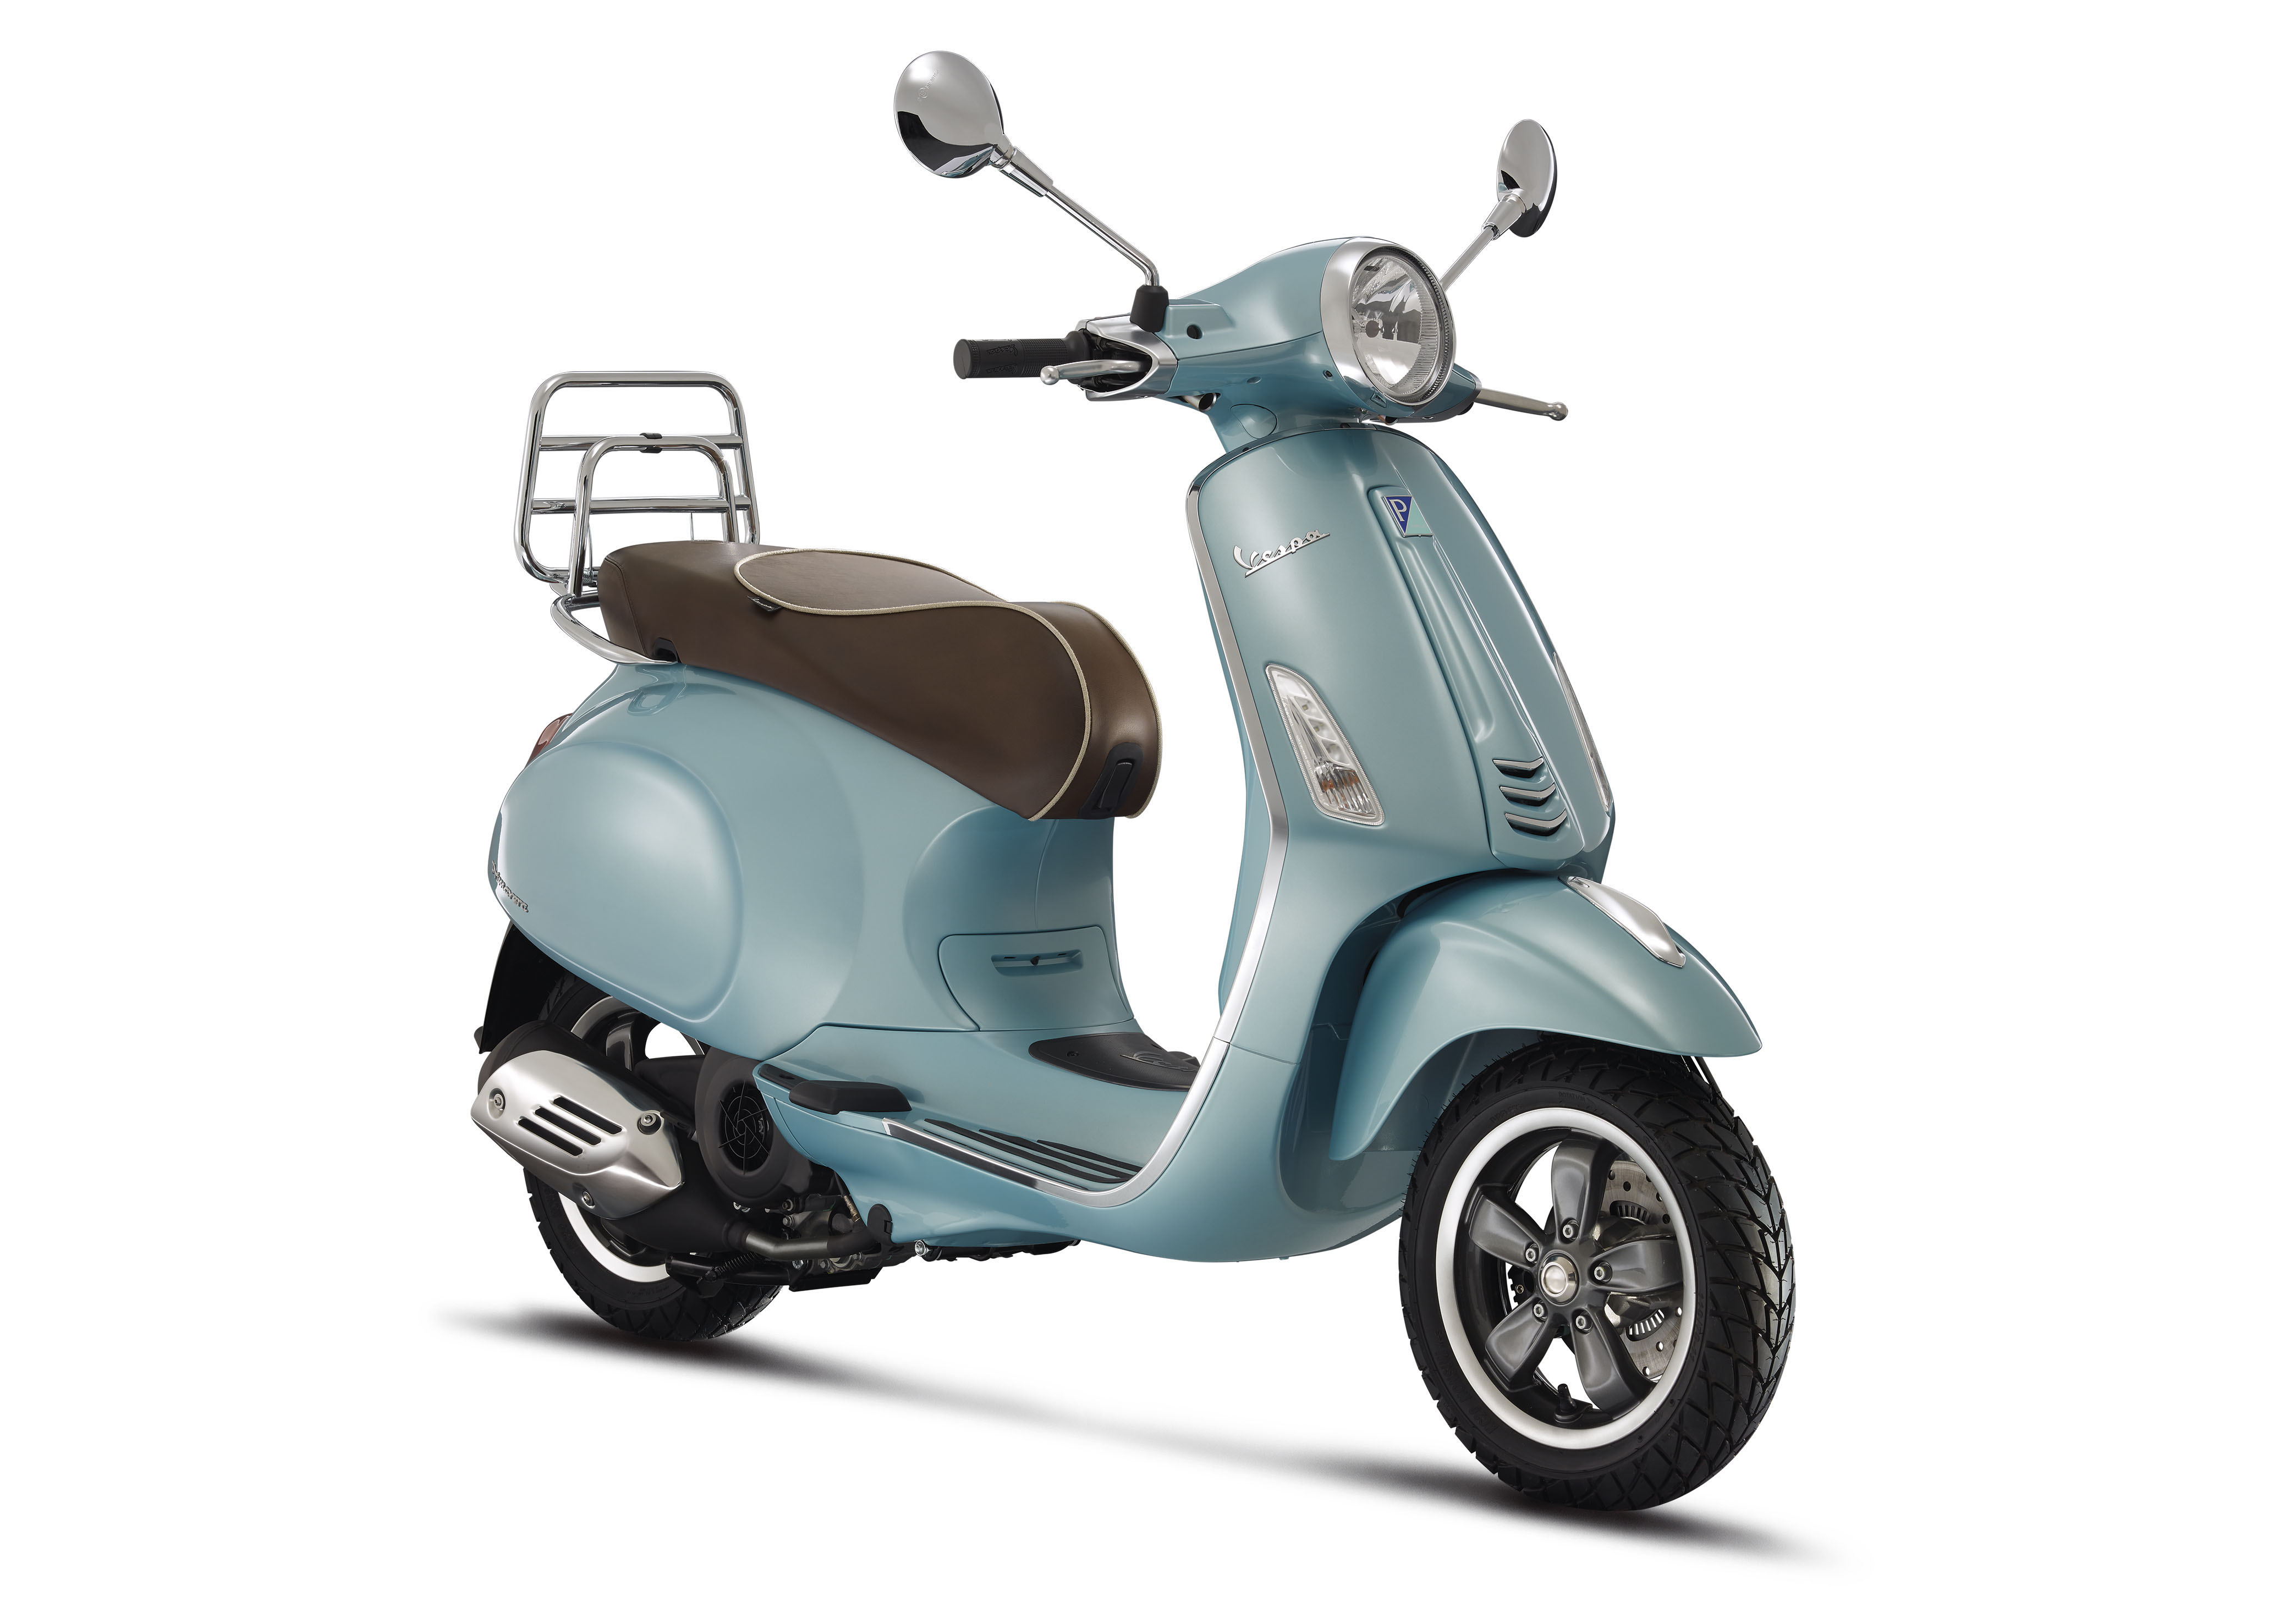 There is only one Vespa: the Turin Court of Appeal protects the 3D trademark and confirm the exclusive right of Piaggio